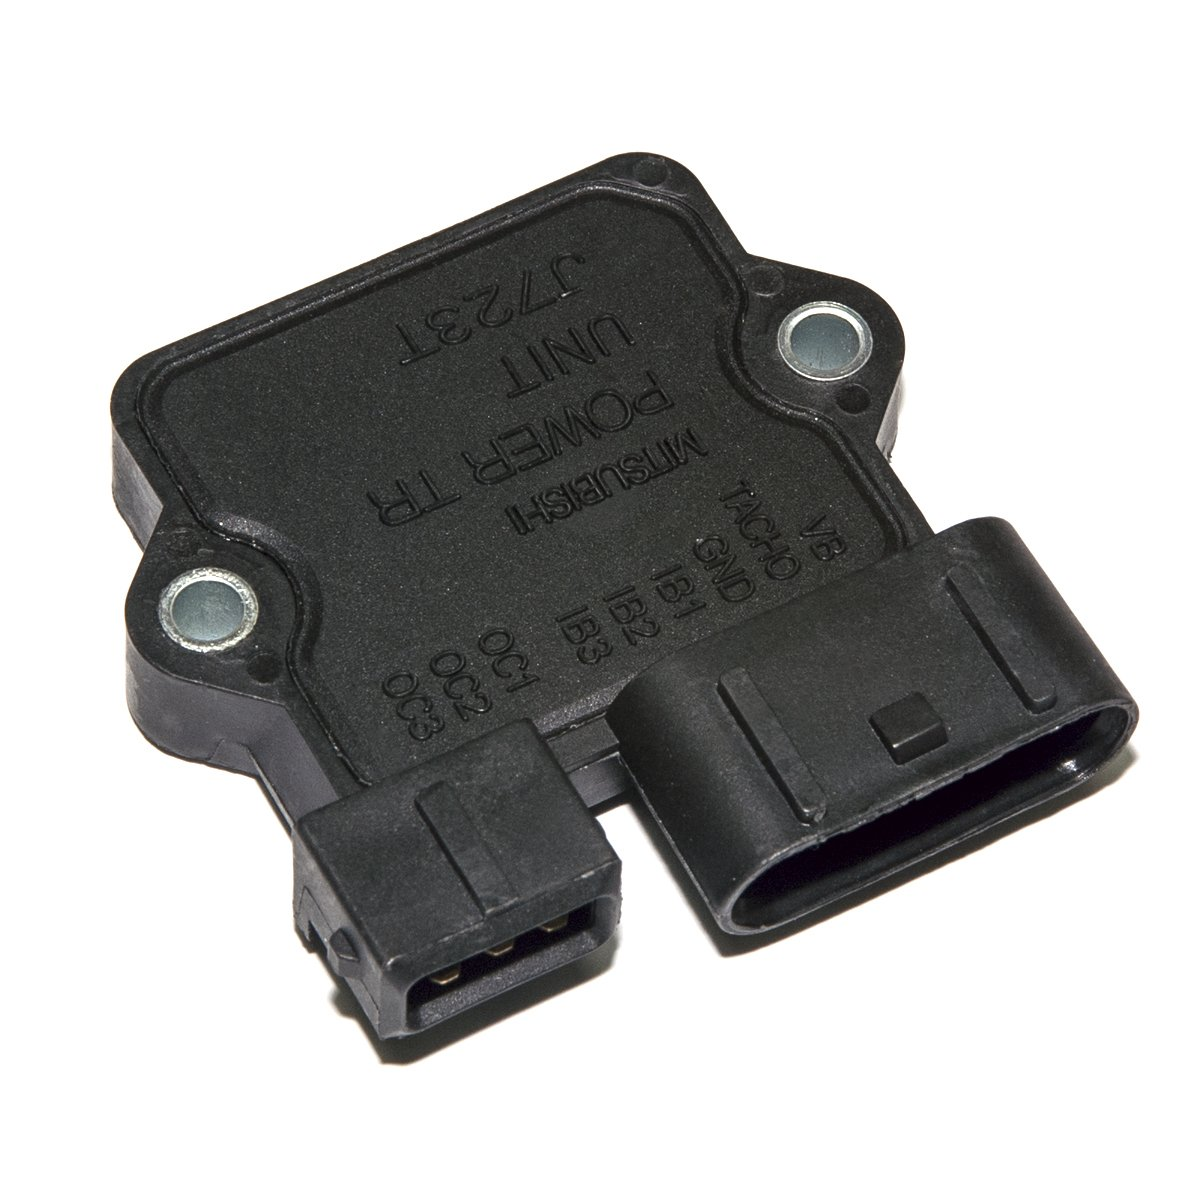 Brand New Compatible Ignition Control Module for LX729 LX607 MD160535 for Mitsubishi Dodge Chrysler Plymouth MD152999 LX732 SH7375 King Auto Parts